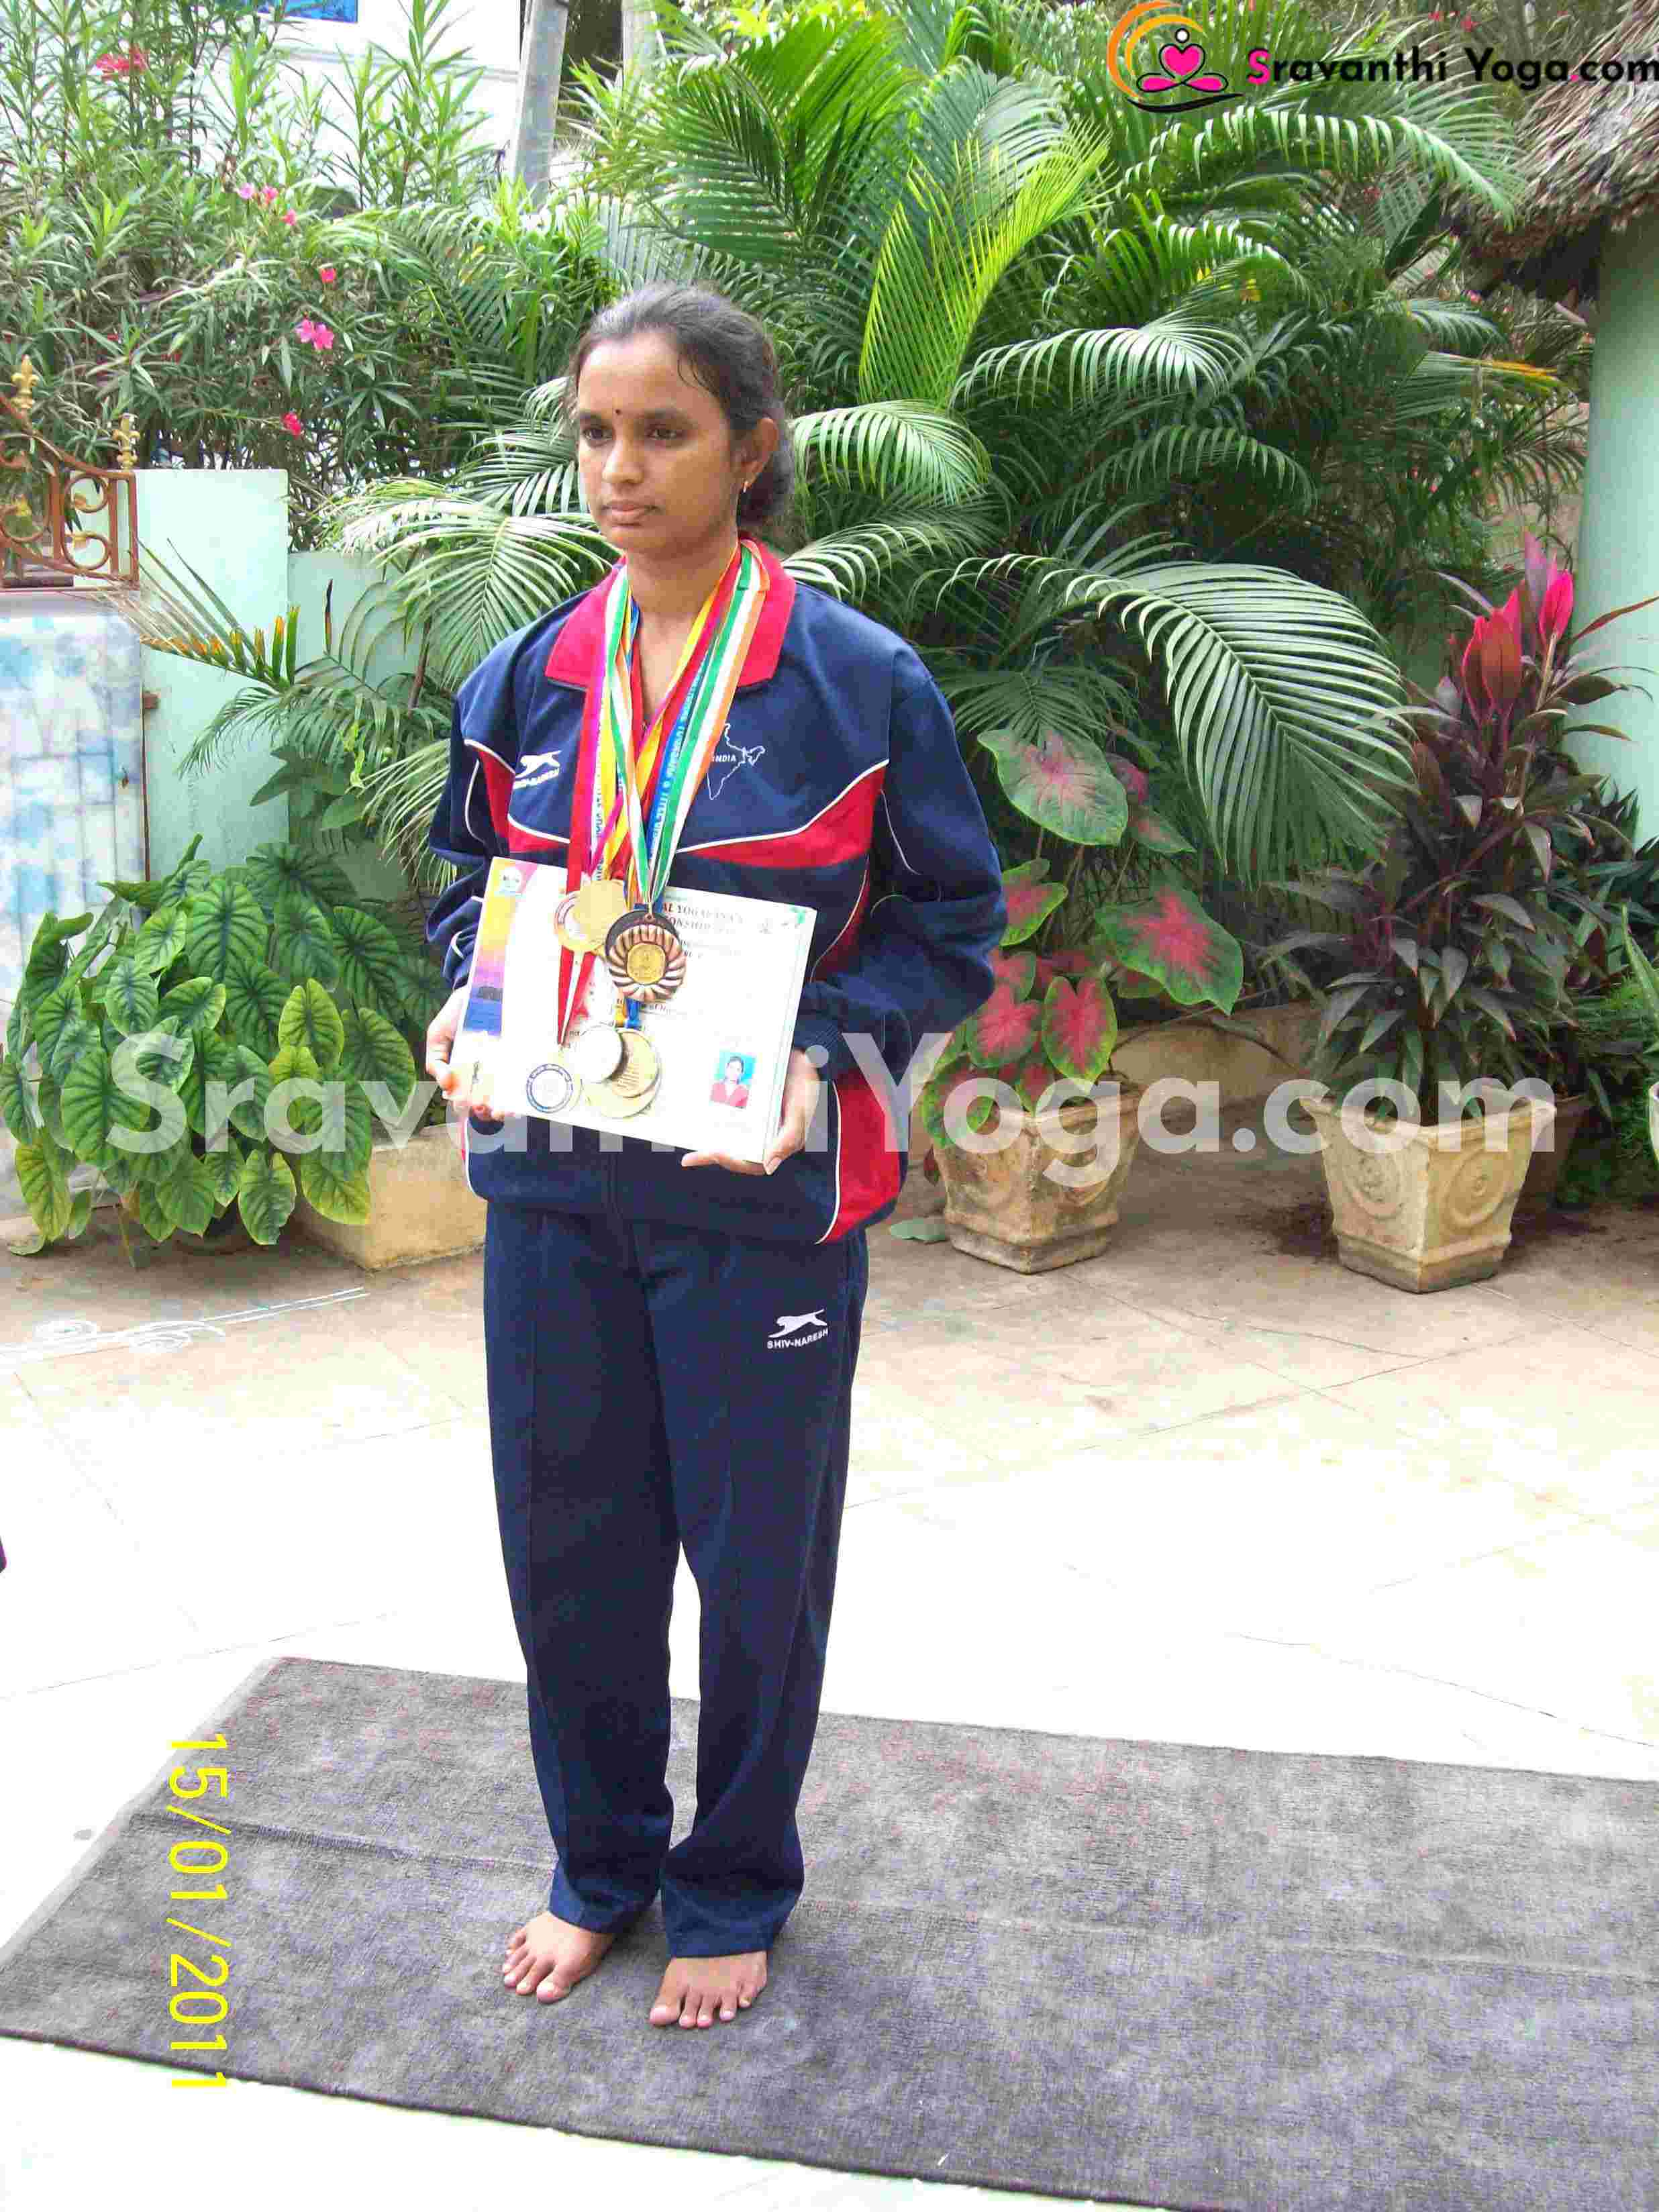 Medal achievement- Yoga Sravanthi